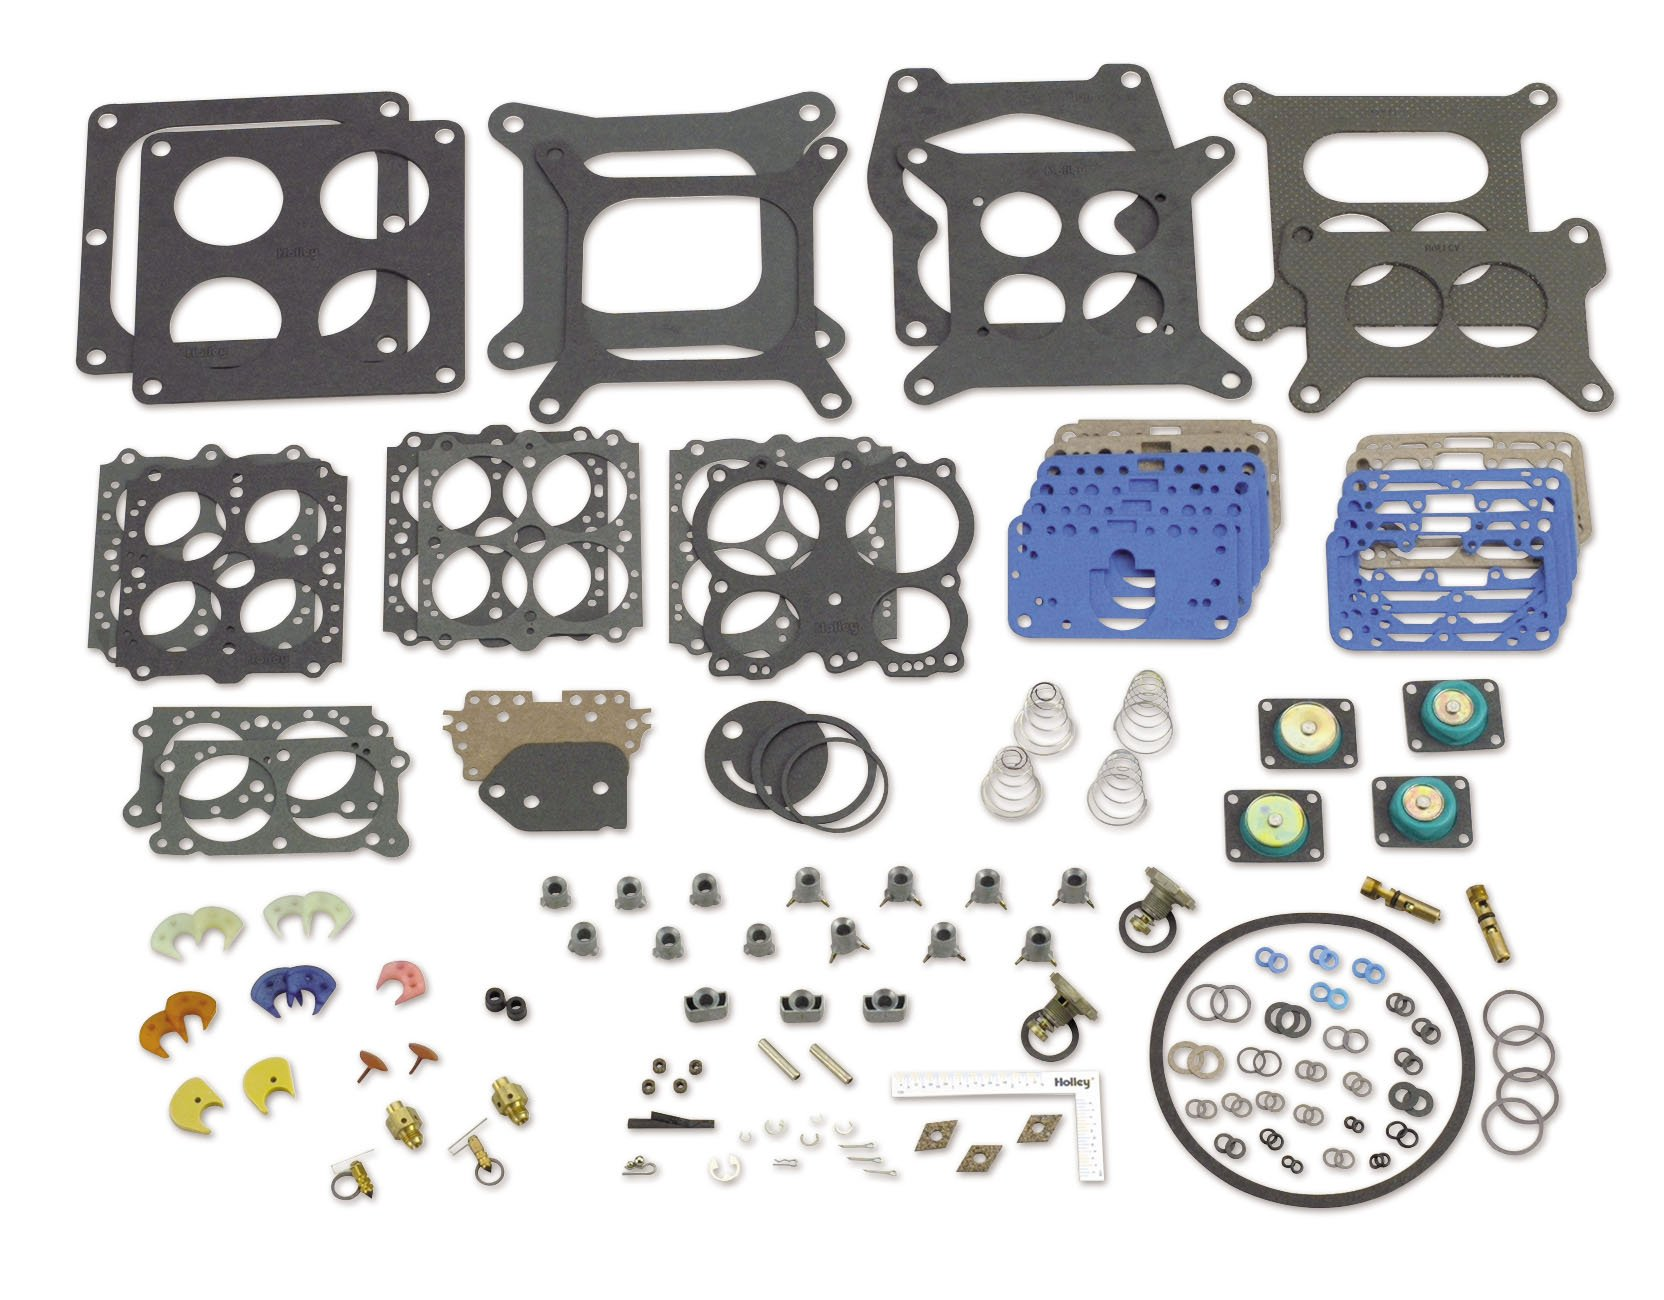 37-933 - Trick Kit Carburetor Rebuild Kit Image